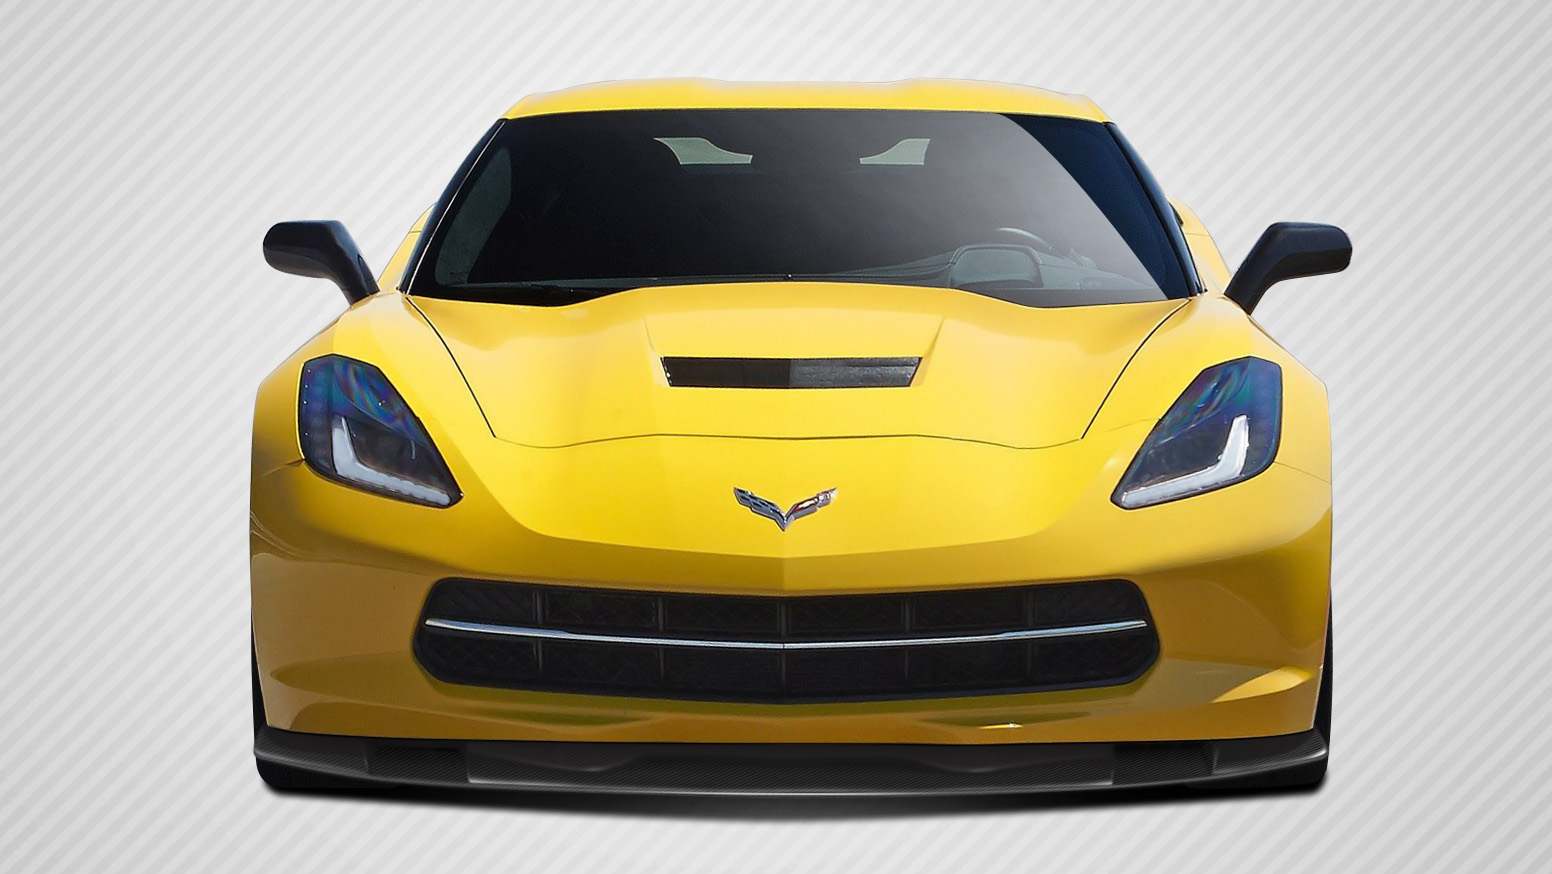 2015 Chevrolet Corvette ALL - Carbon Fiber Fibre Body Kit Bodykit - Chevrolet Corvette C7 Carbon Creations Thunderbolt Body Kit - 5 Piece - Includes T